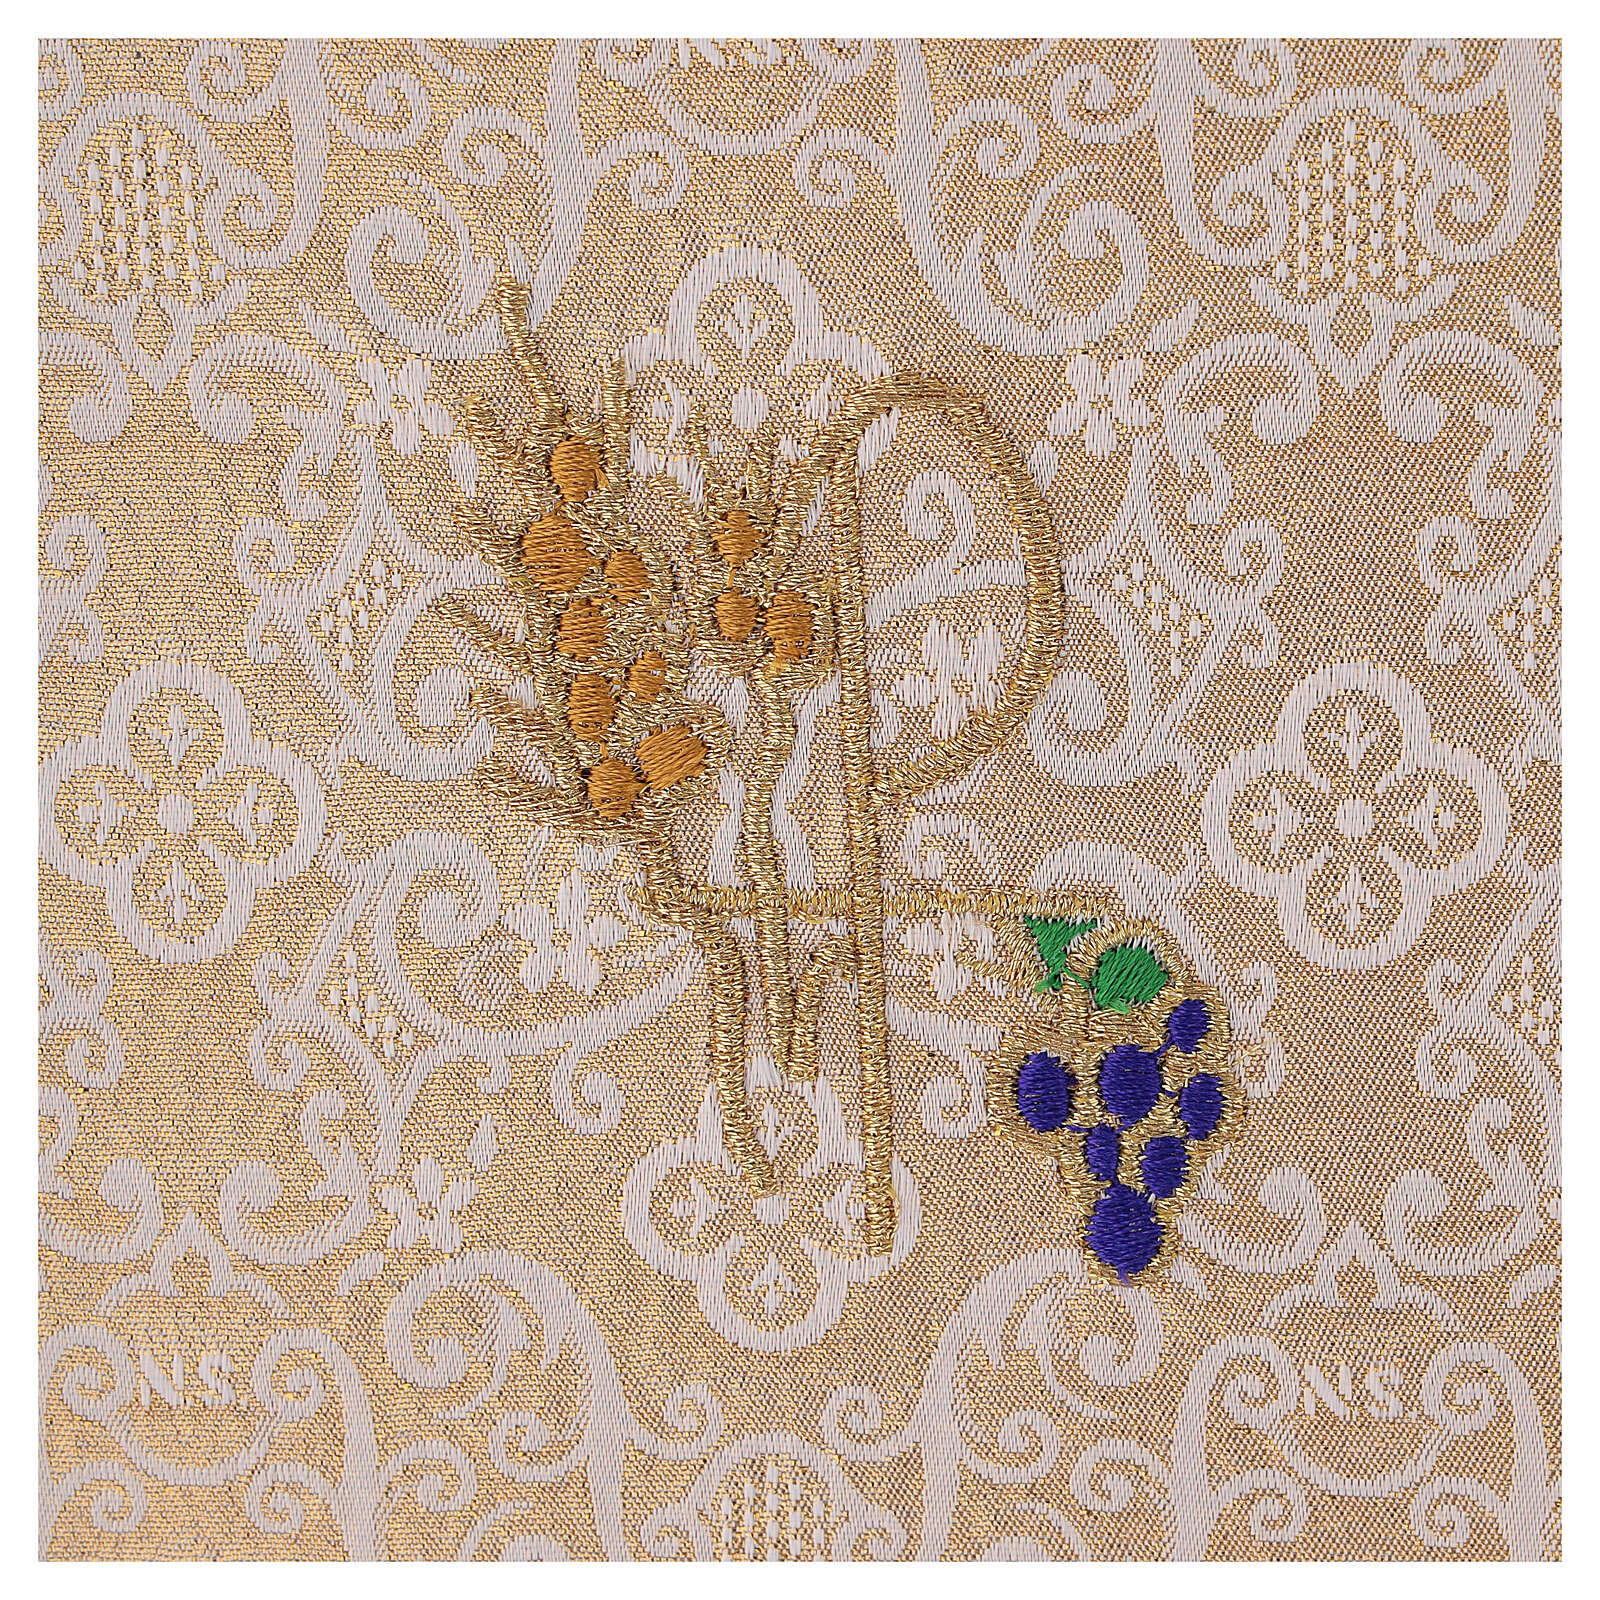 Chalice veil (pall) with Xp, wheat and grapes embroidery on ivory damask fabric 4